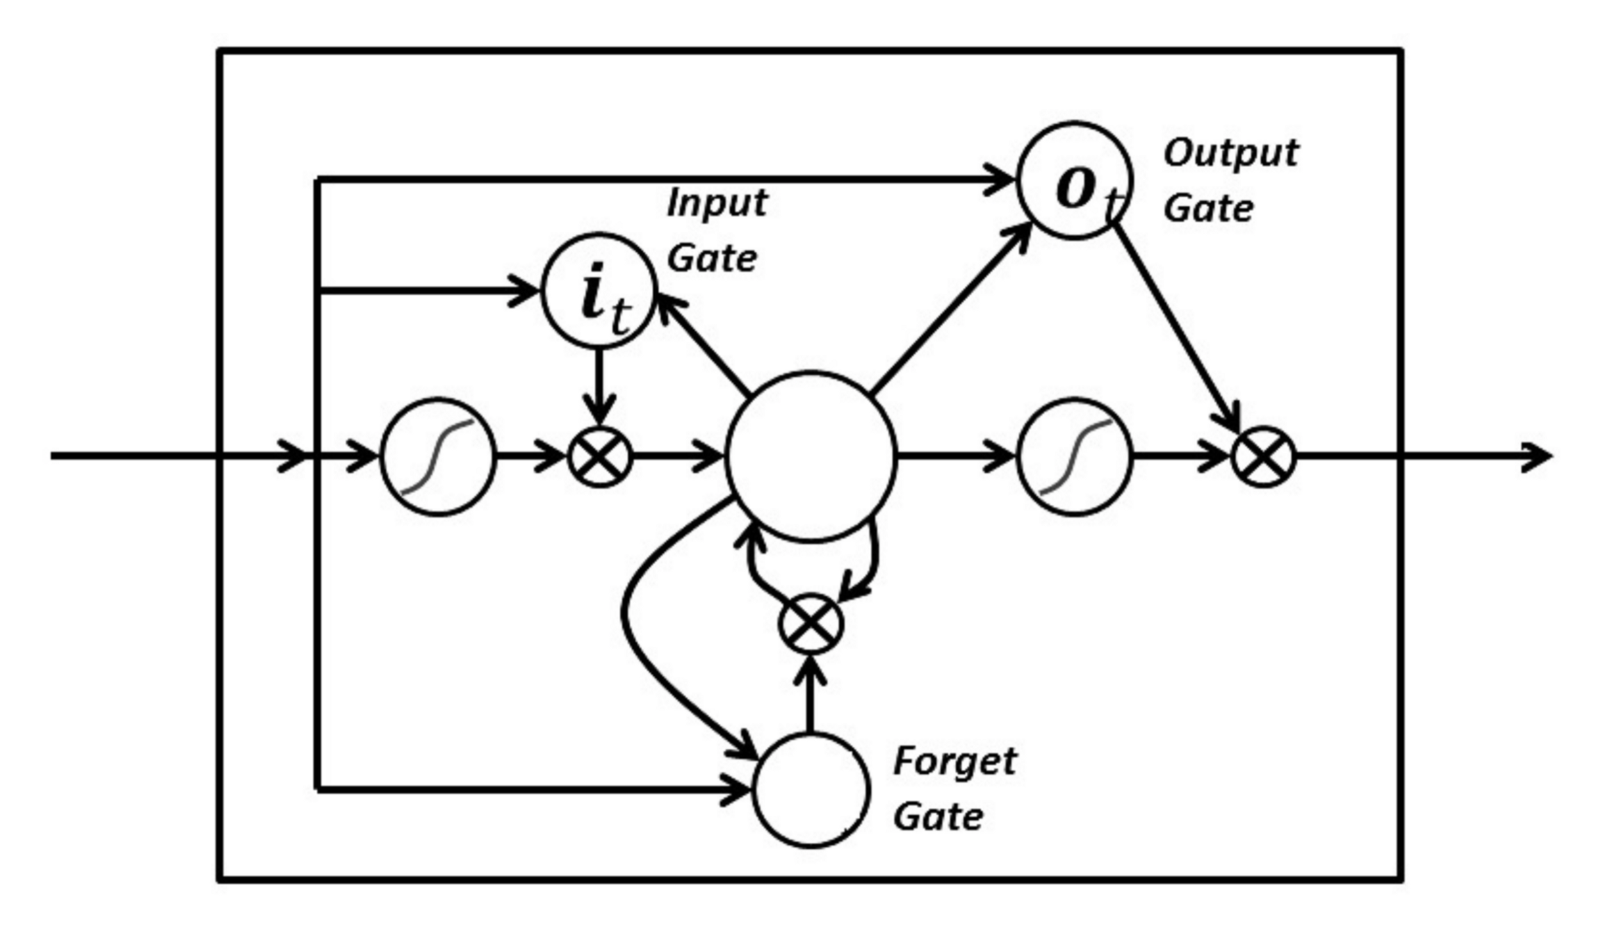 Recurrent Neural Networks And Lstm Towards Data Science The Diagram Below Shows How A Basic Virtual Private Network Functions Gates In Are Analog Form Of Sigmoids Meaning That They Range From 0 To 1 Fact Enables Them Do